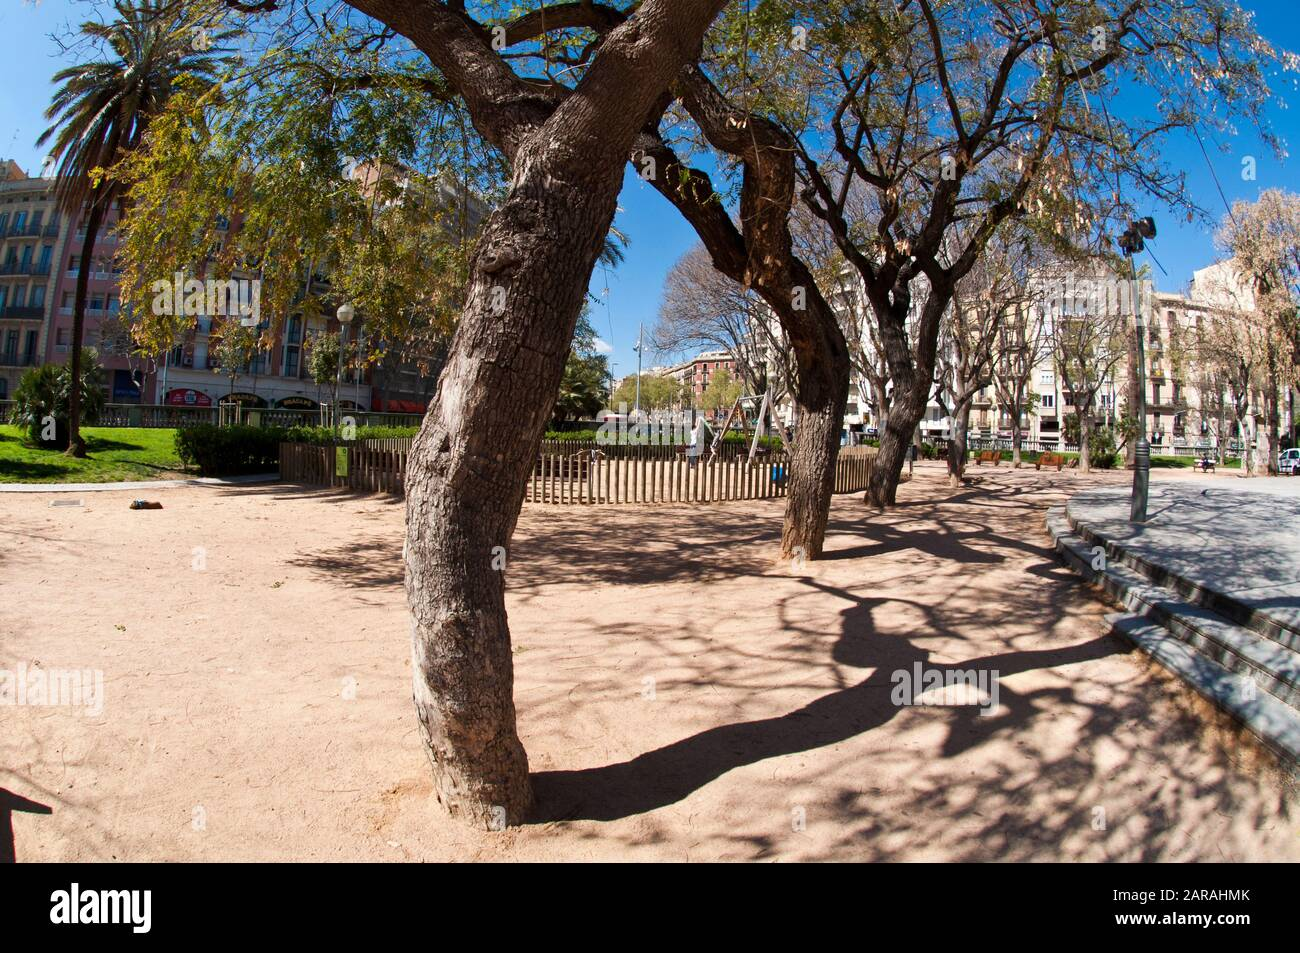 Plaza Tetuan High Resolution Stock Photography And Images Alamy